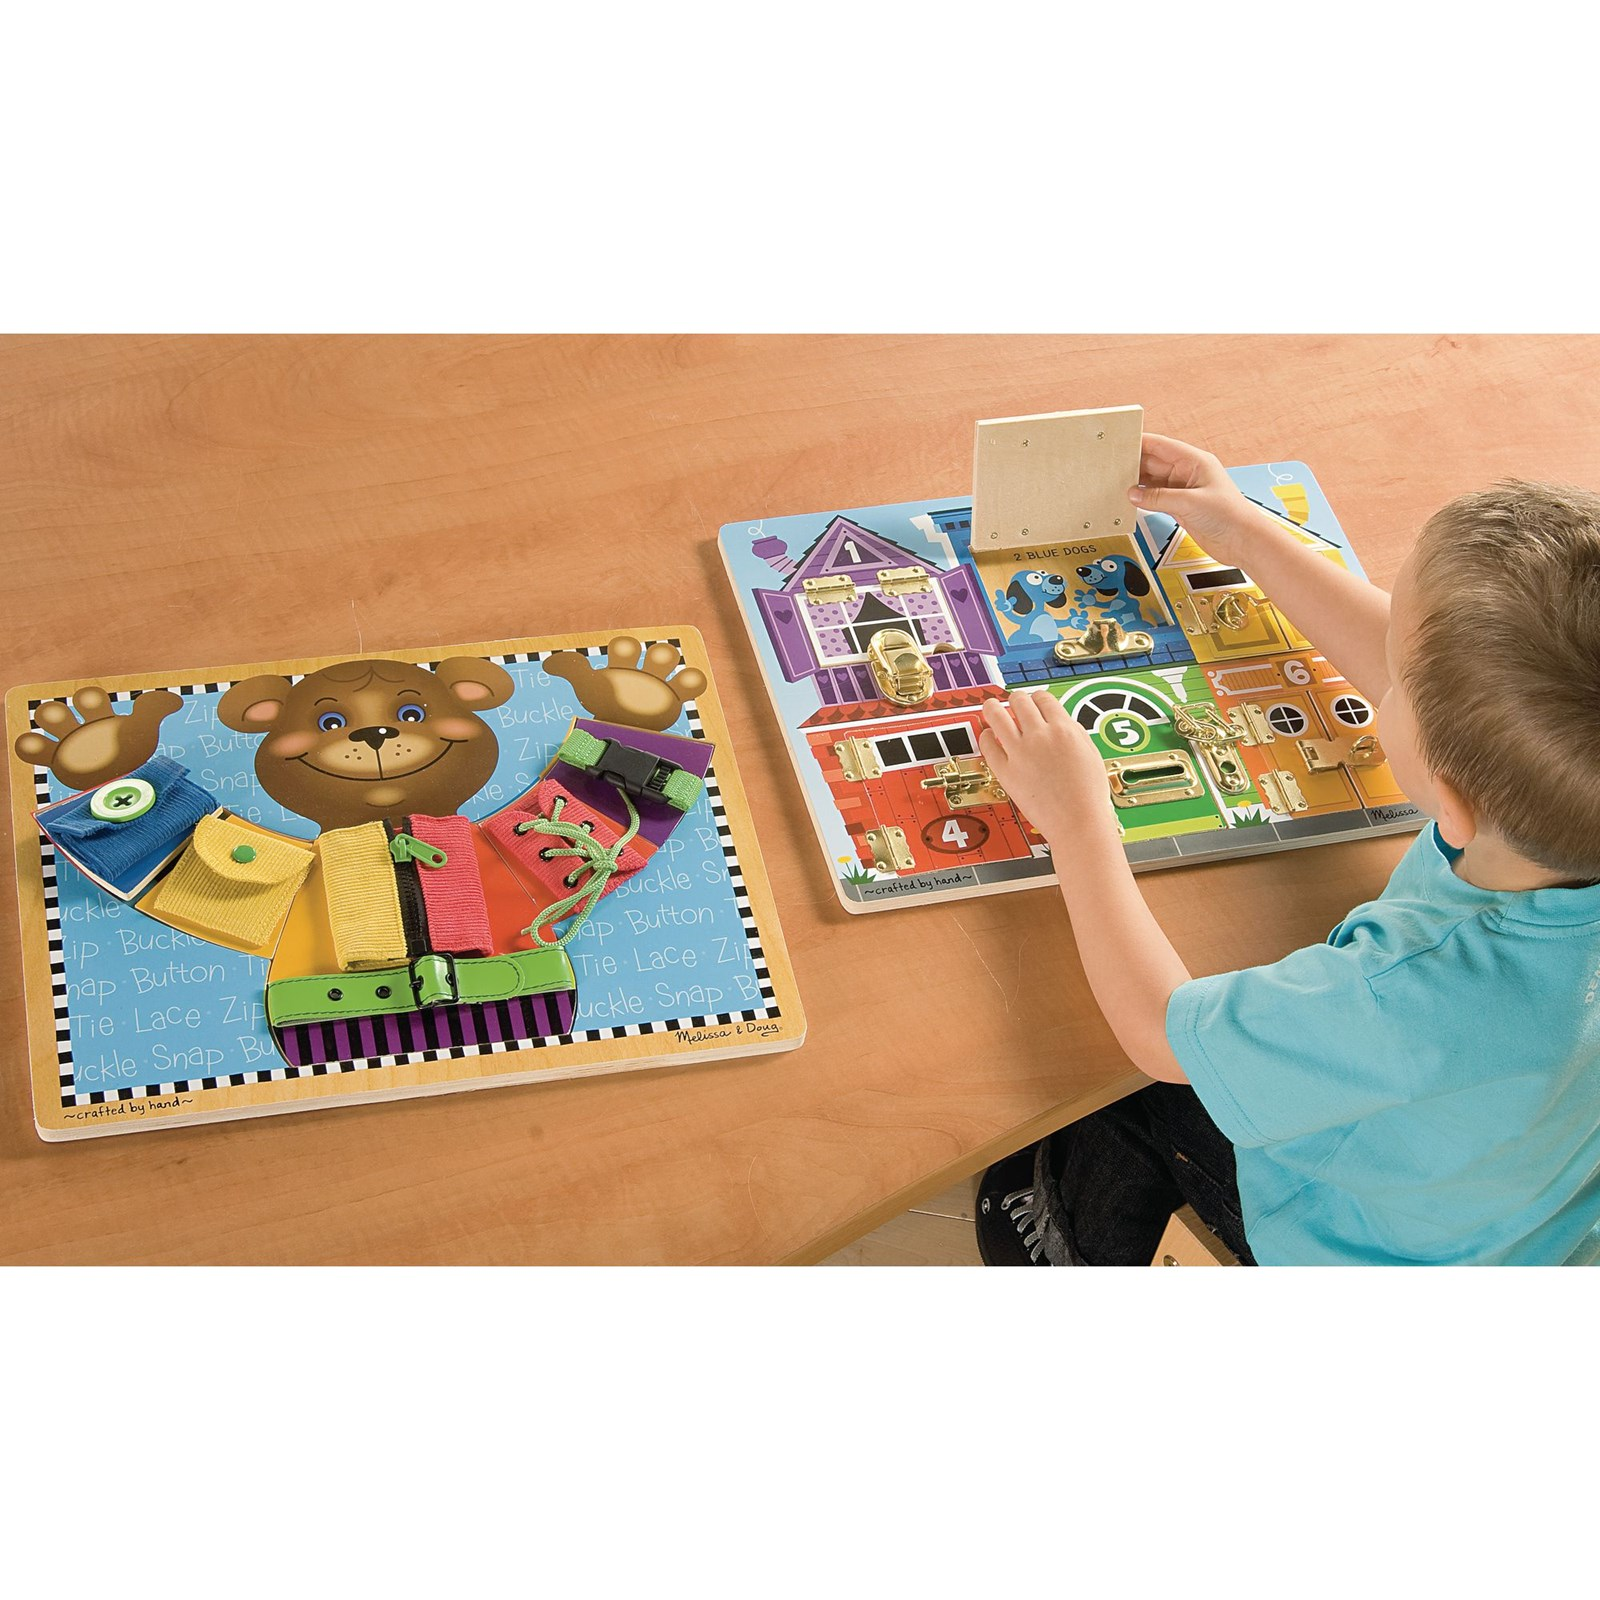 Latches Board and Basic Skills Board Offer